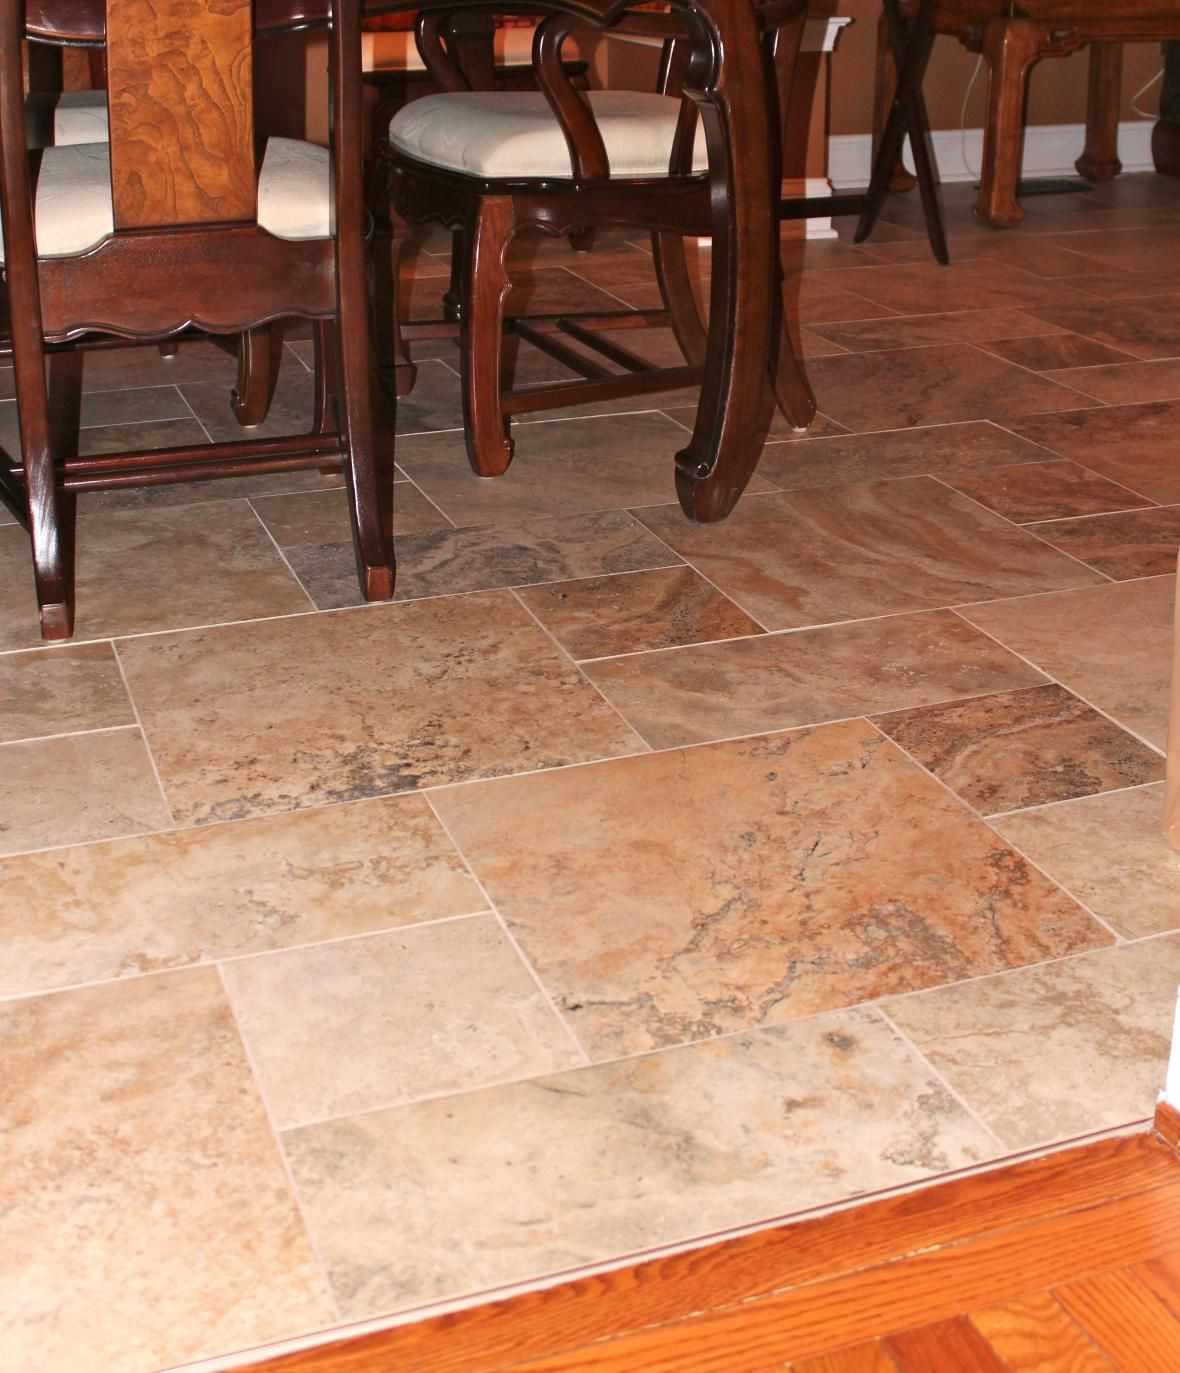 dining room tile flooring. dining room - nice tile floor pattern, the different shapes take squareness away from flooring .